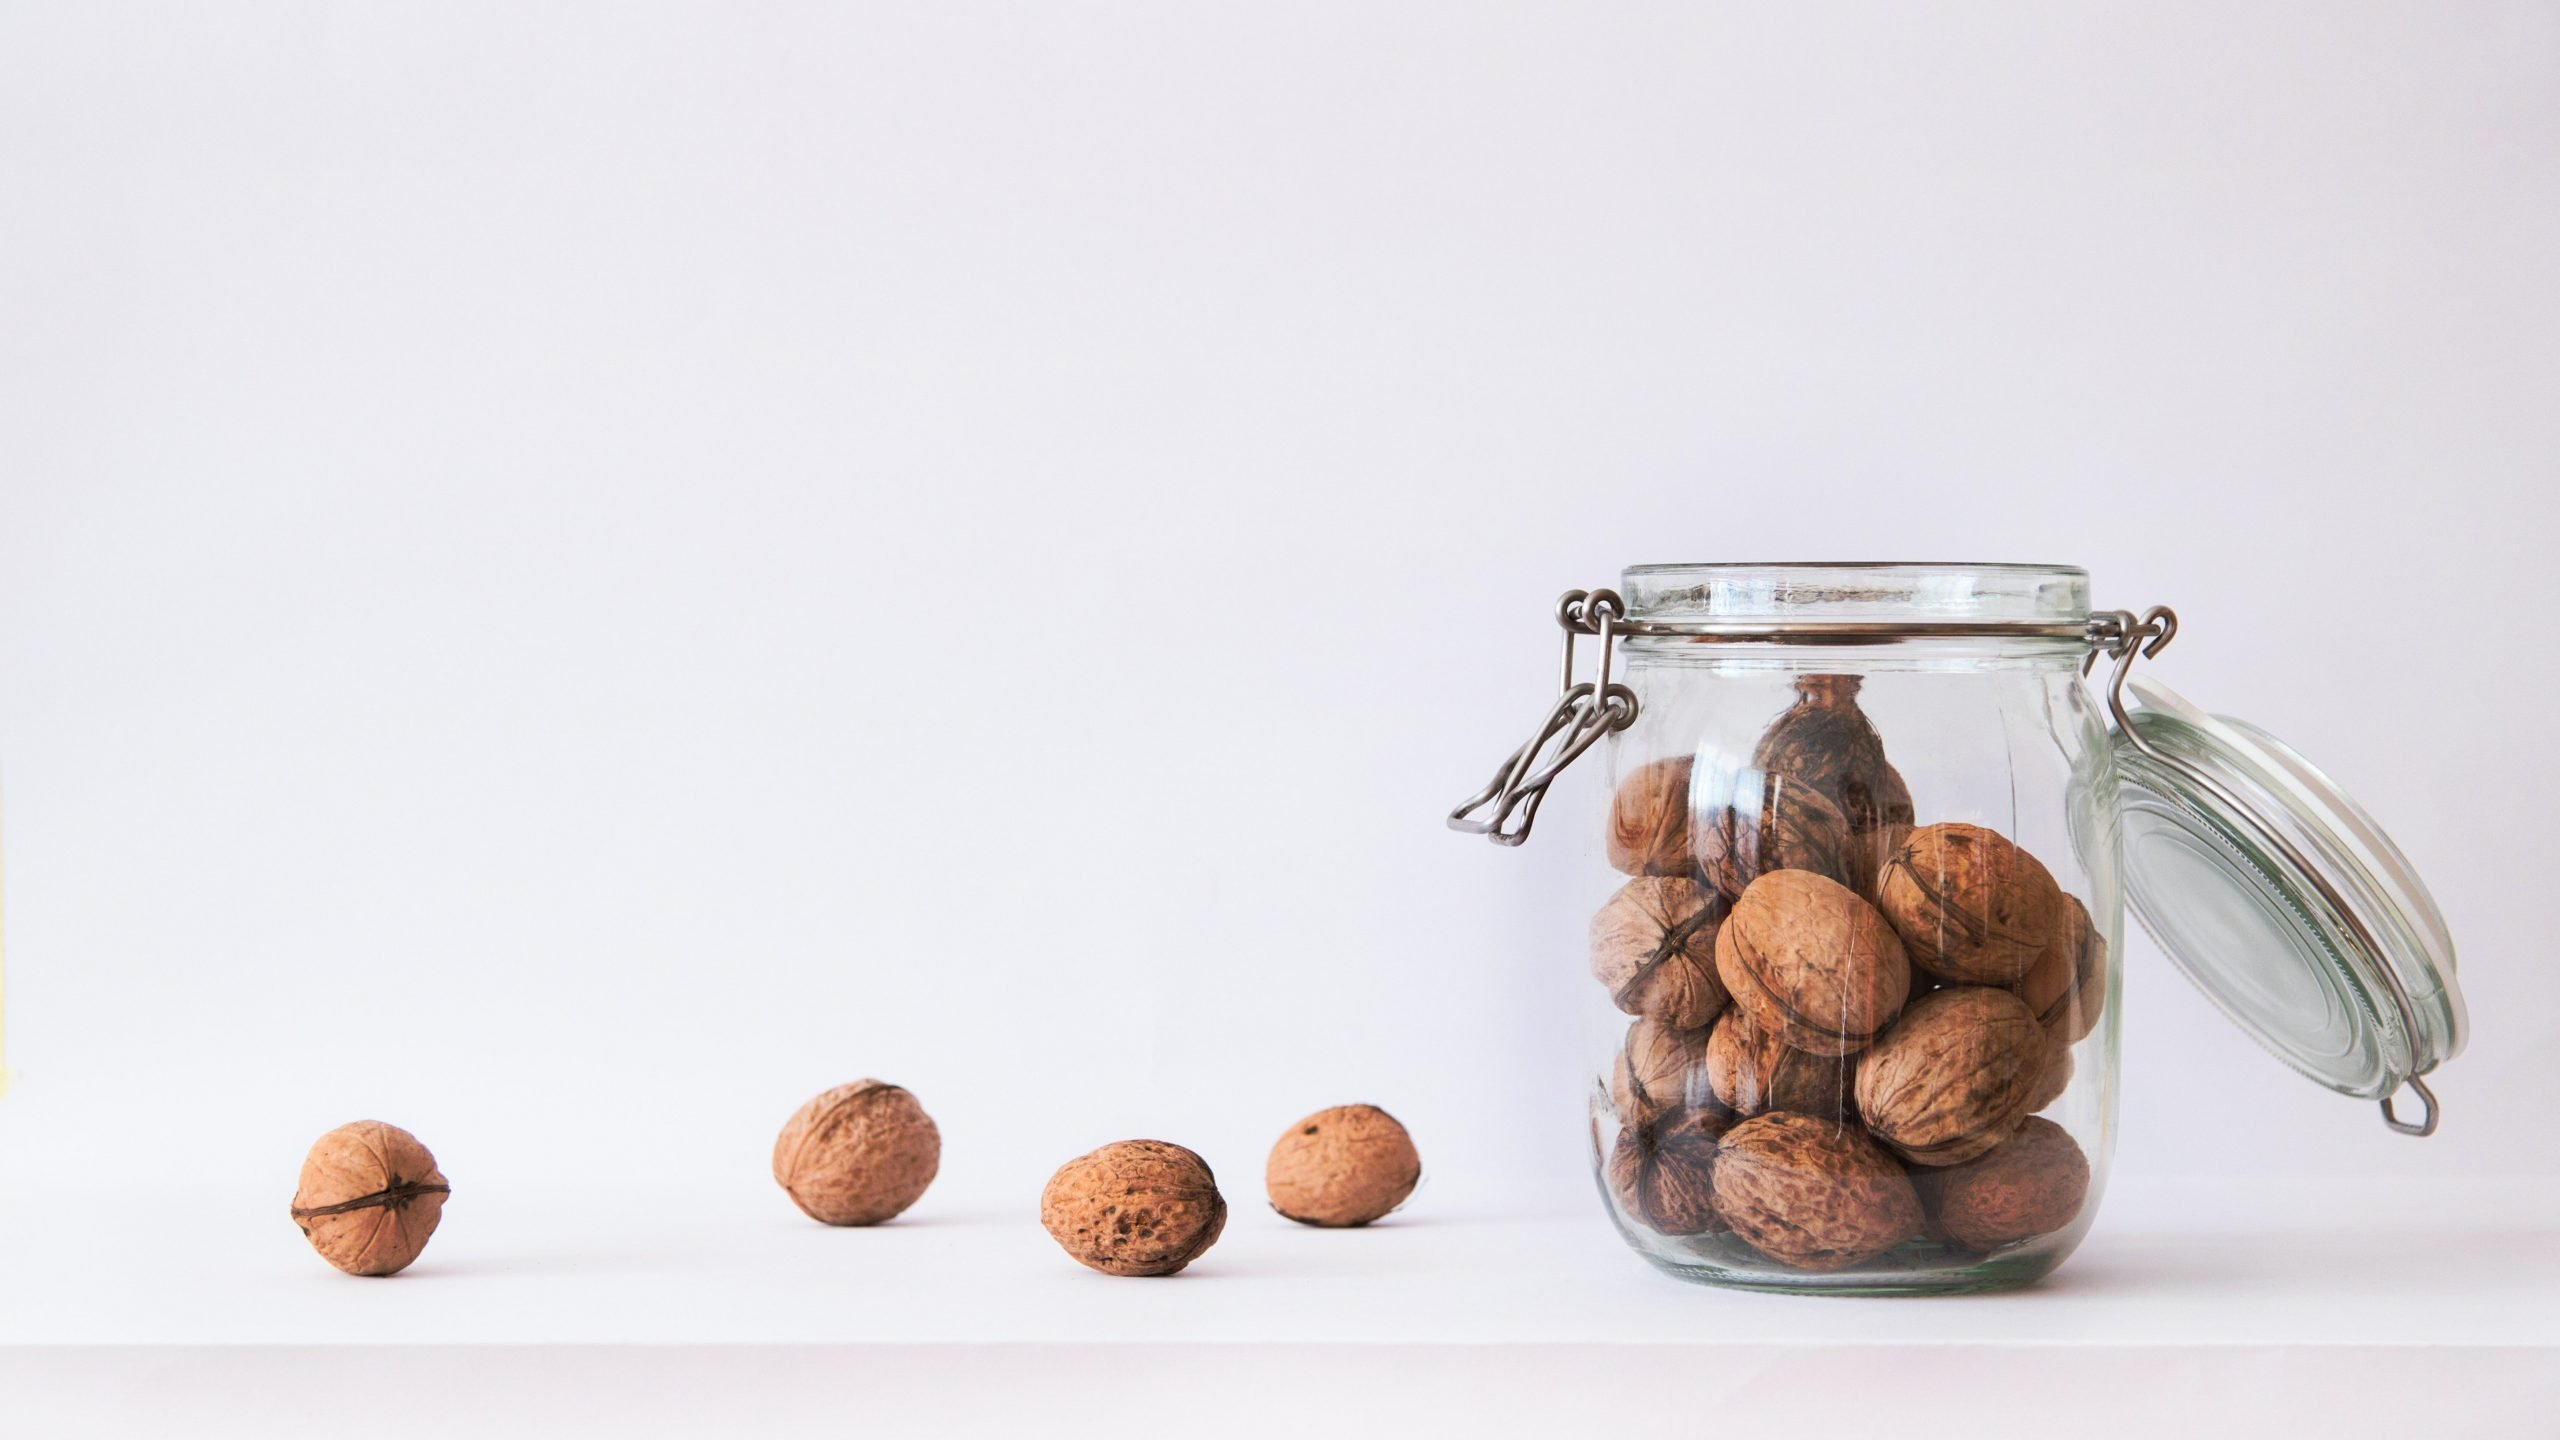 walnuts are among the best keto nuts to eat